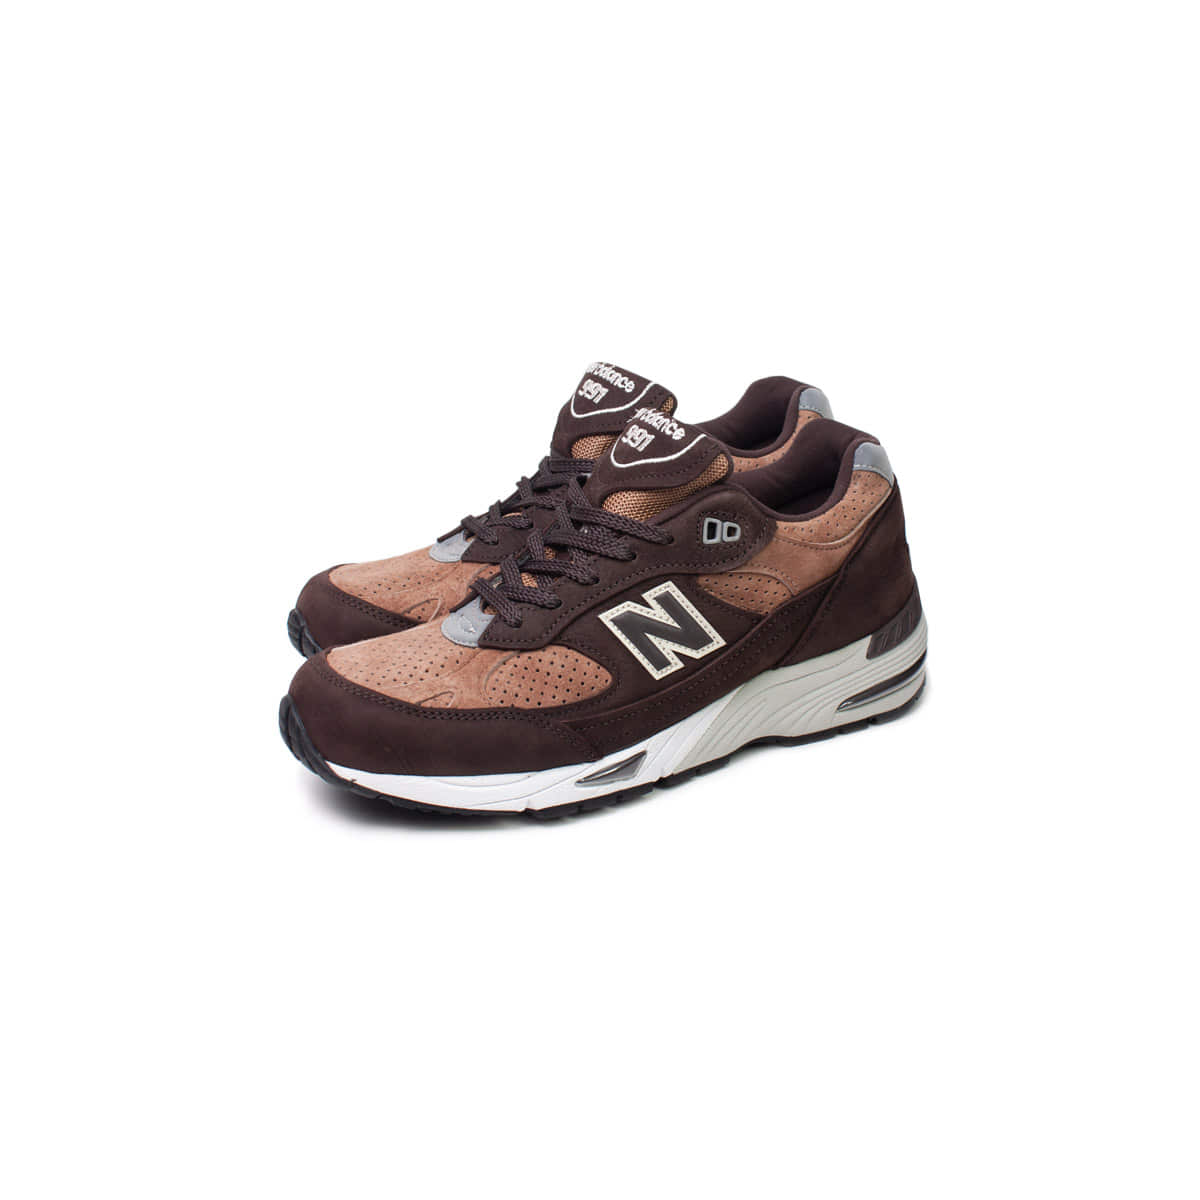 [NEW BALANCE] M991DBT 'BROWN'